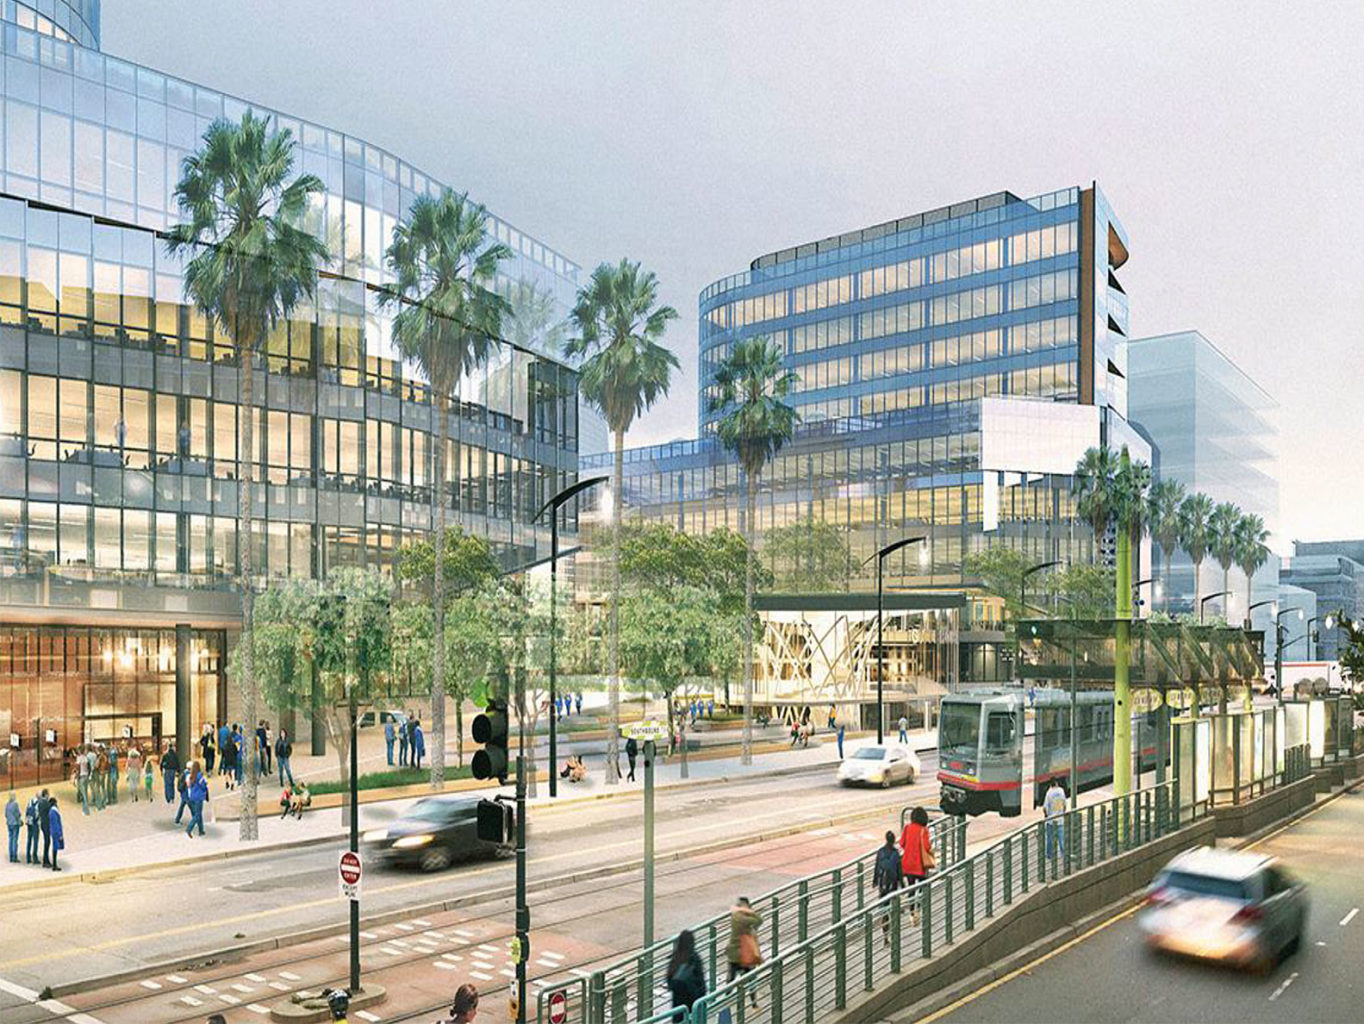 The cost of a new Muni train platform near the Chase Center in Mission Bay is estimated at $33 million, according to the SFMTA. (Courtesy SFMTA)